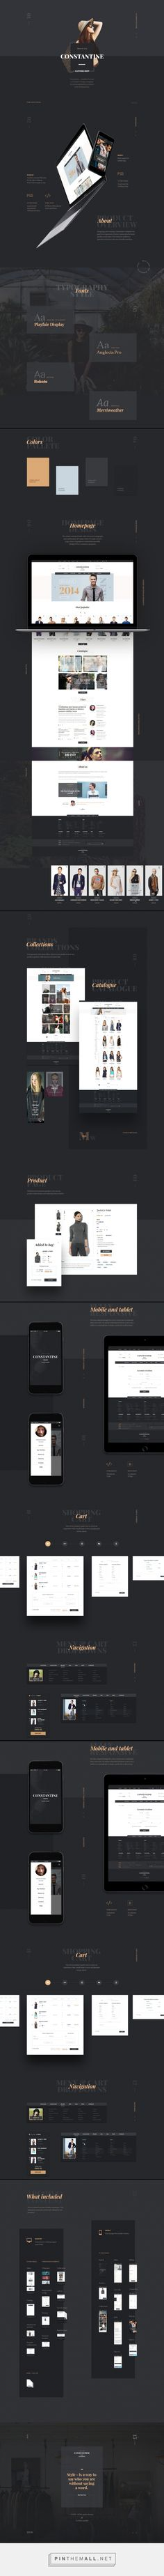 Constantine  Photoshop template for your e-Commerce project https://ui8.net/products/constantine - created via https://pinthemall.net